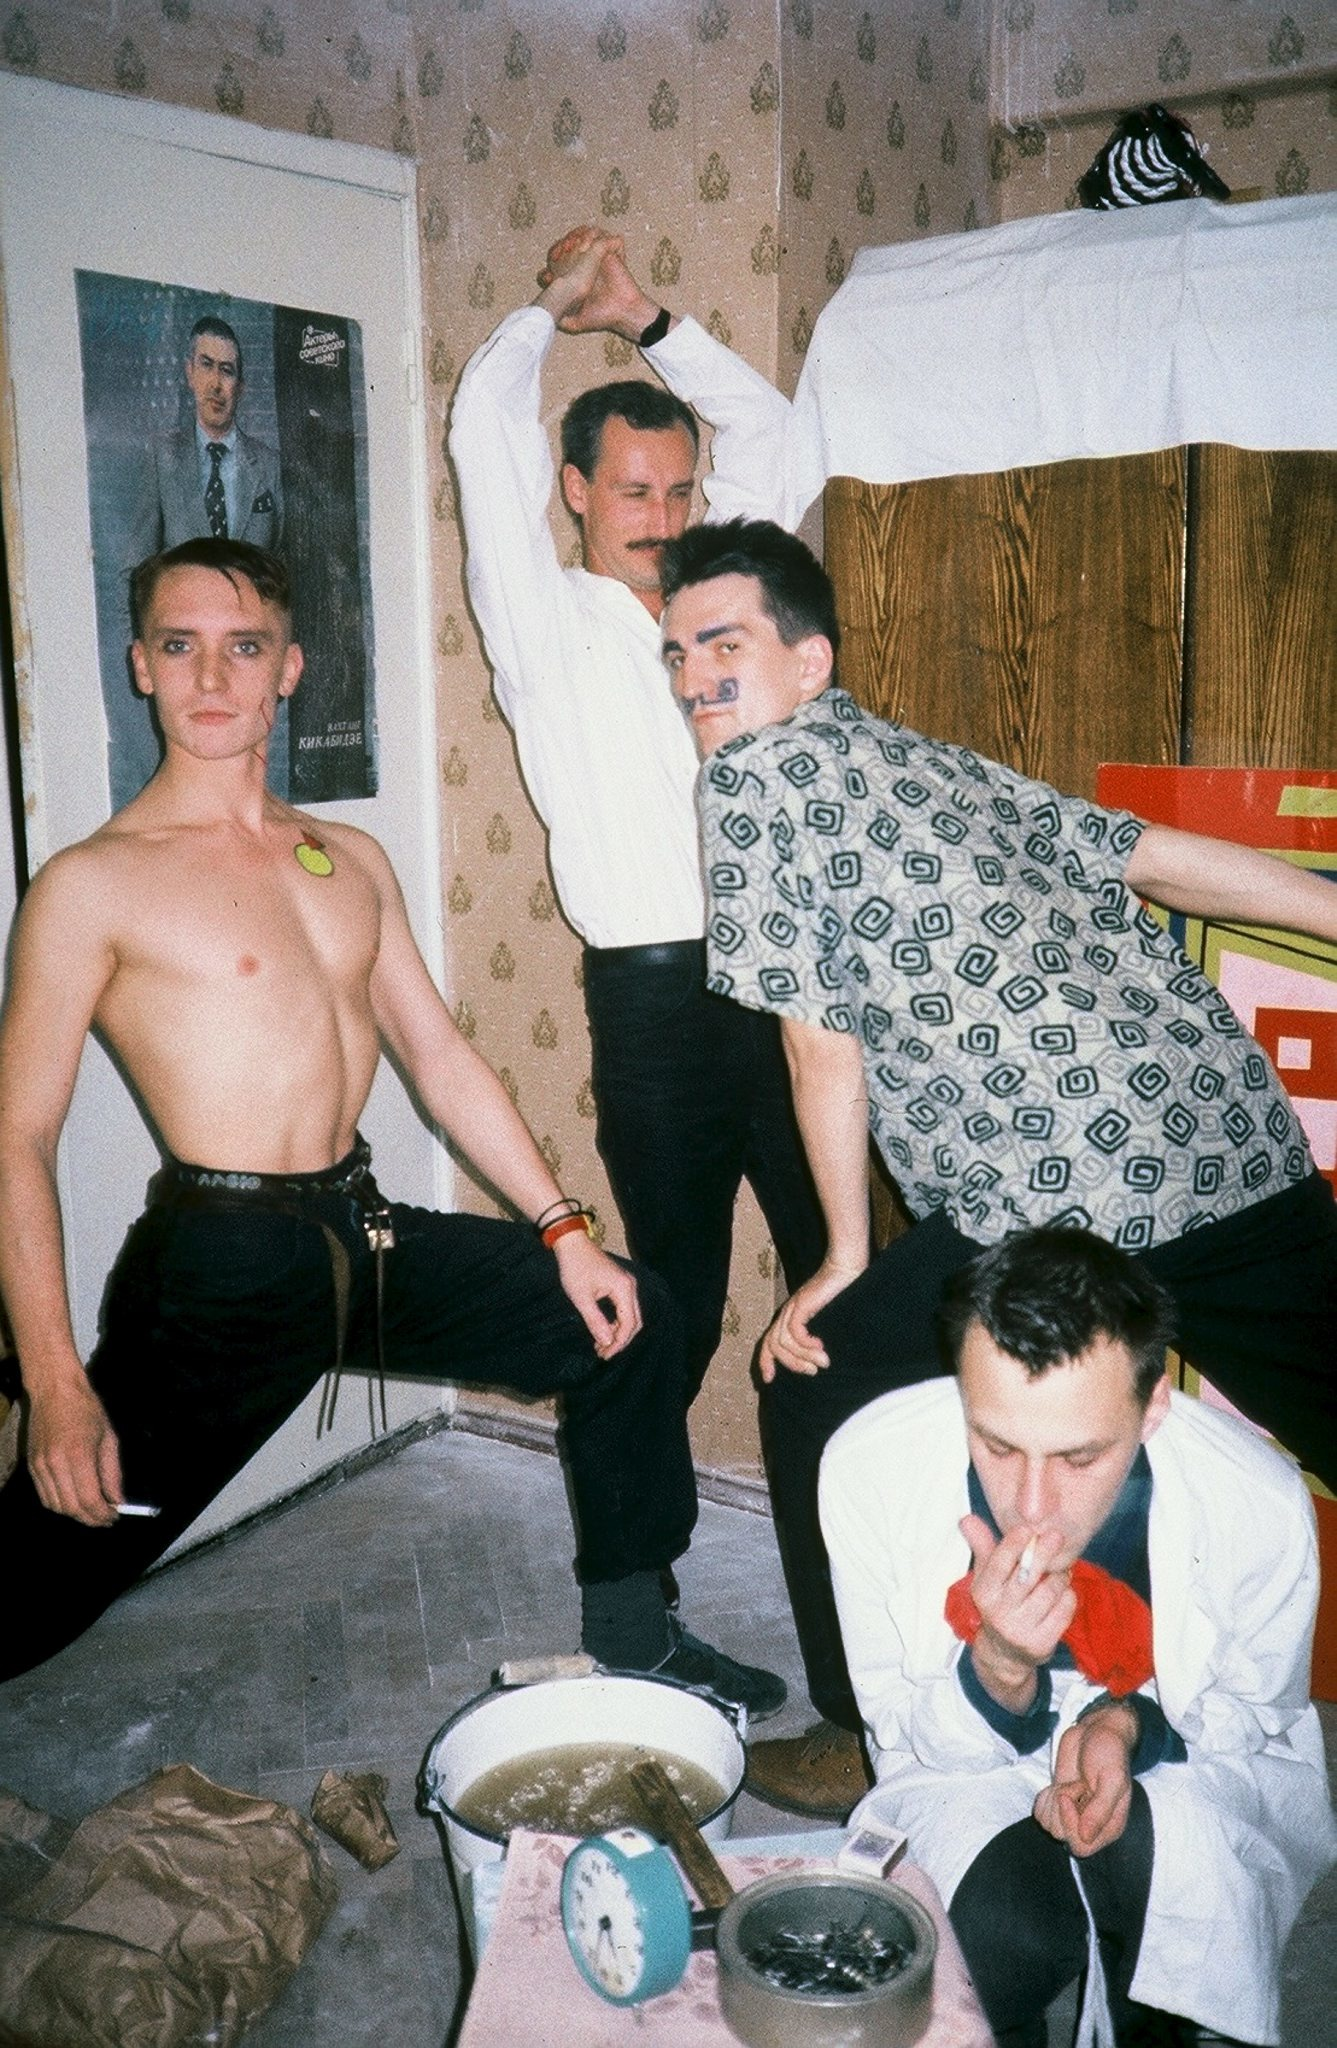 'The New Artists' (1987) — From left to right: Georgy Gurianov, Evgeny Kozlov, Timur Novikov, Igor Verichev. Taken at Kozlov's apartment in Peterhof. Image credit: Paquita Escofet Miro